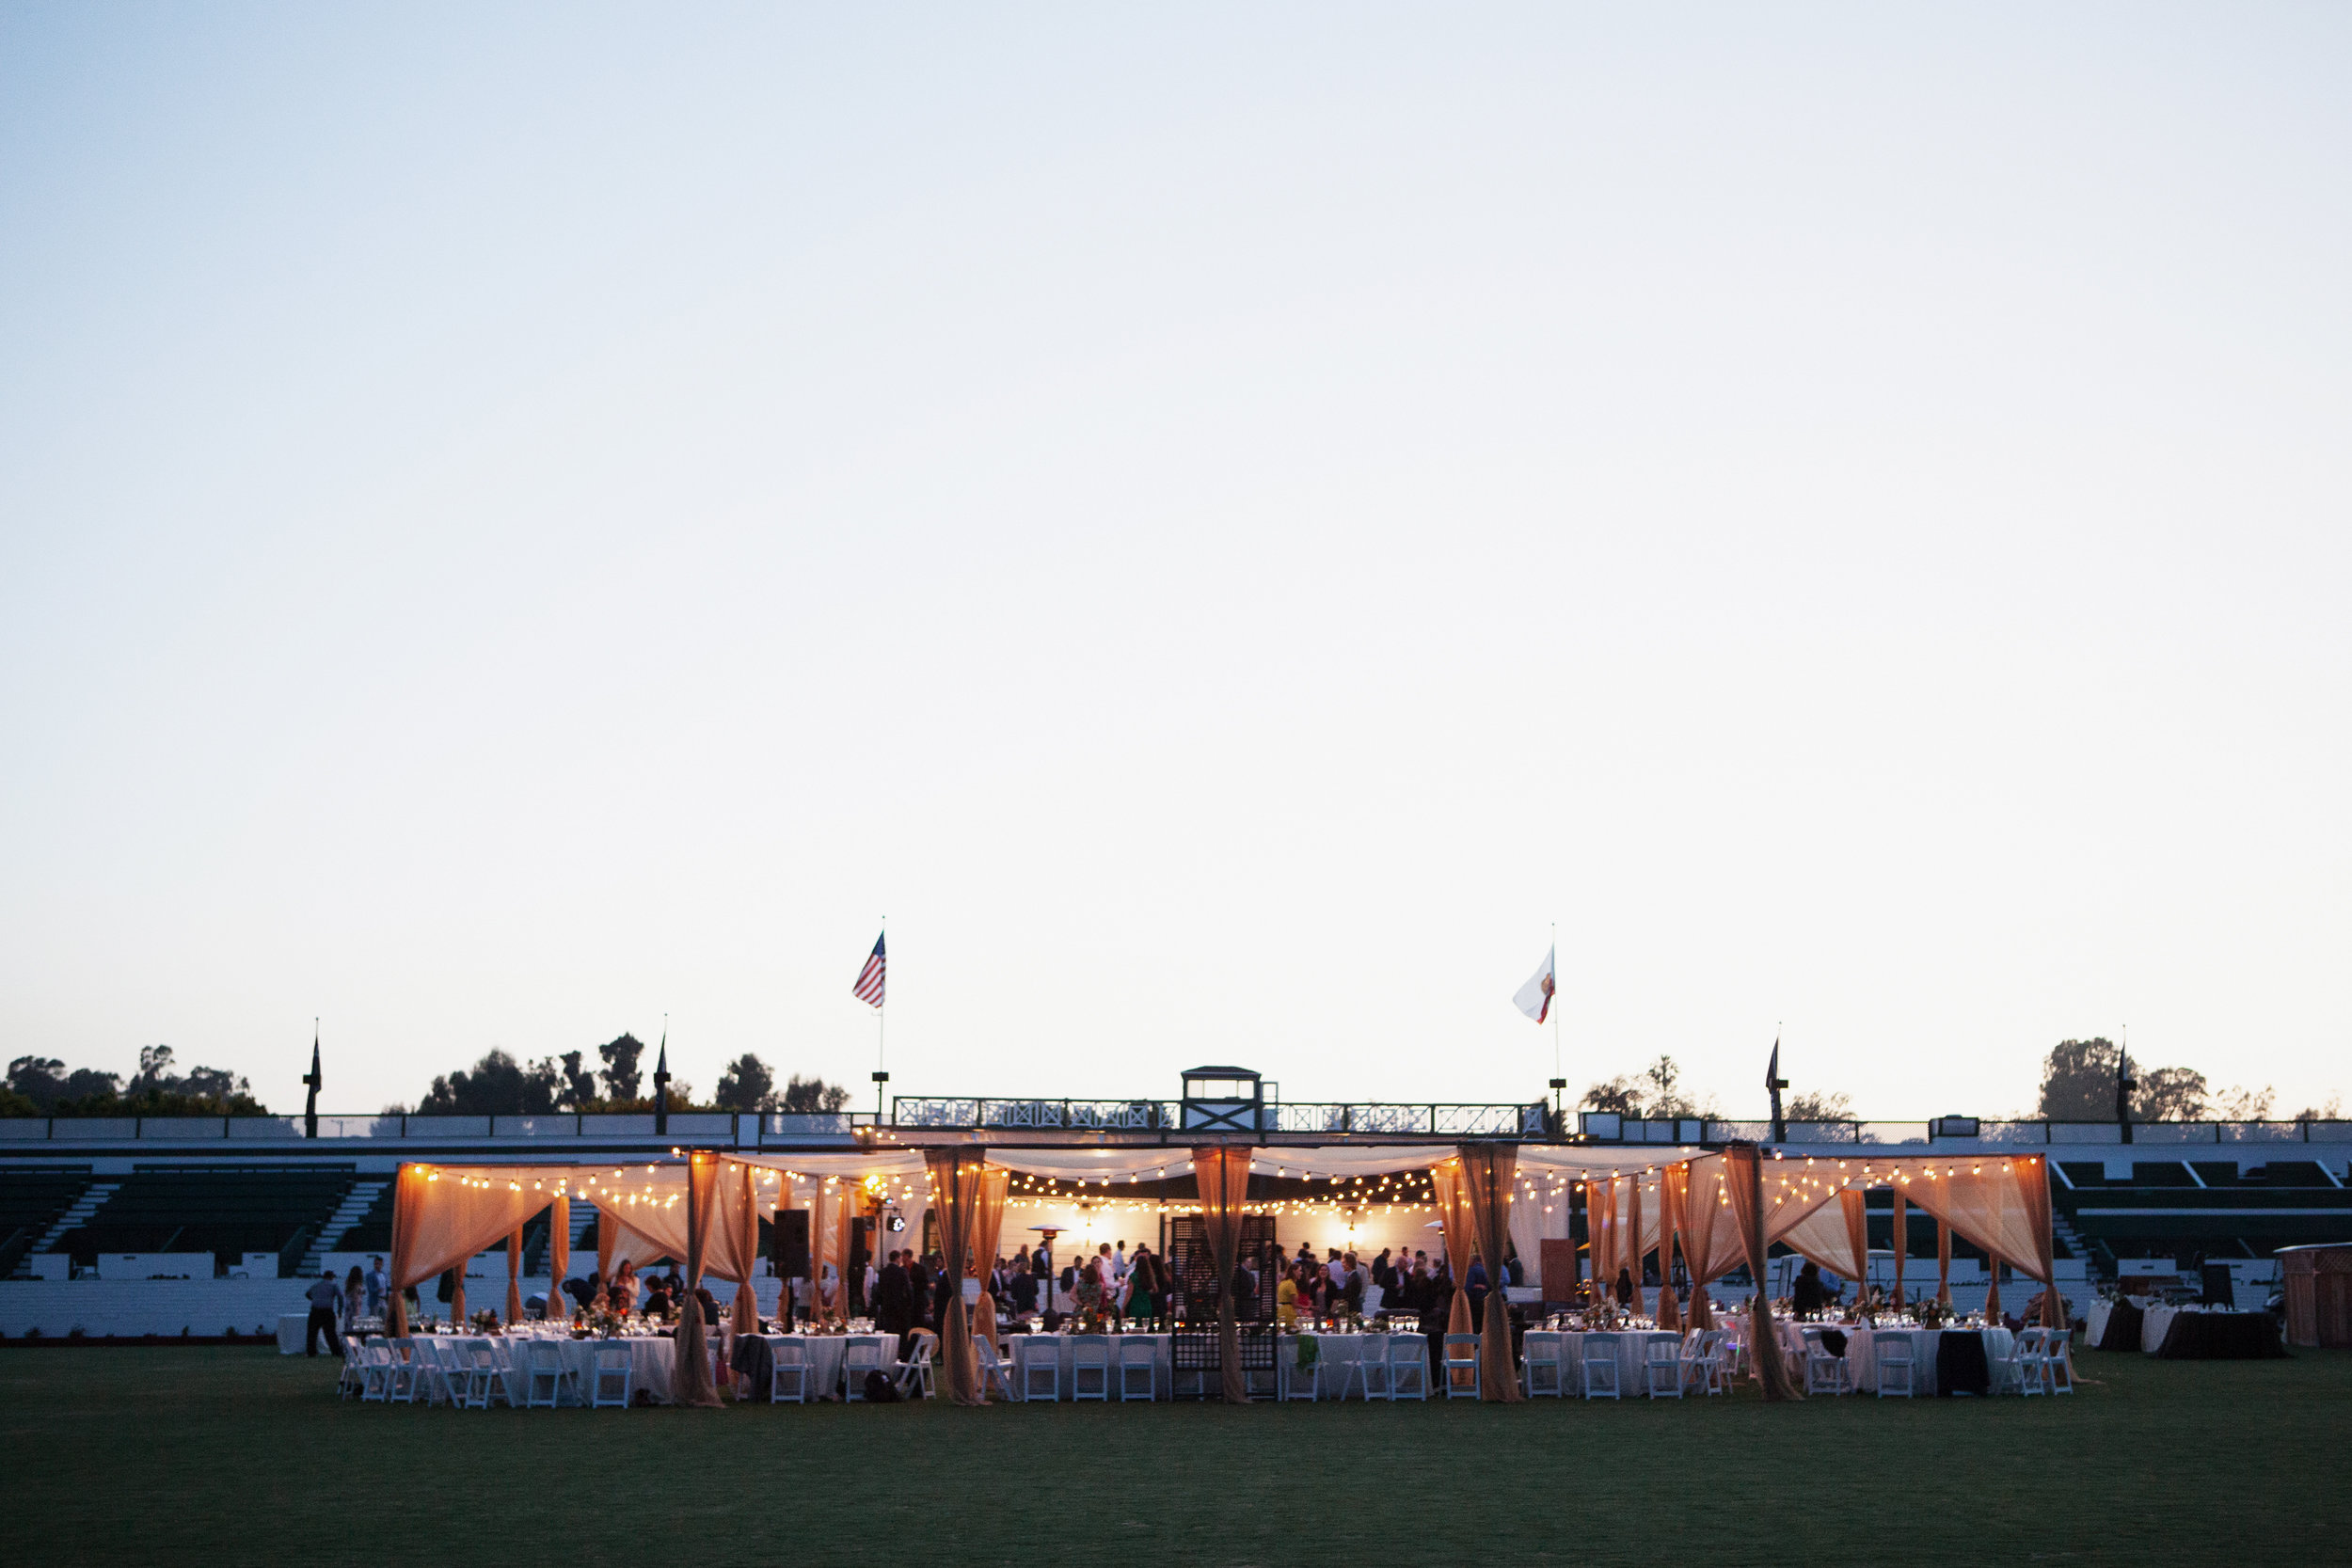 Santa Barbara Polo Club tented reception